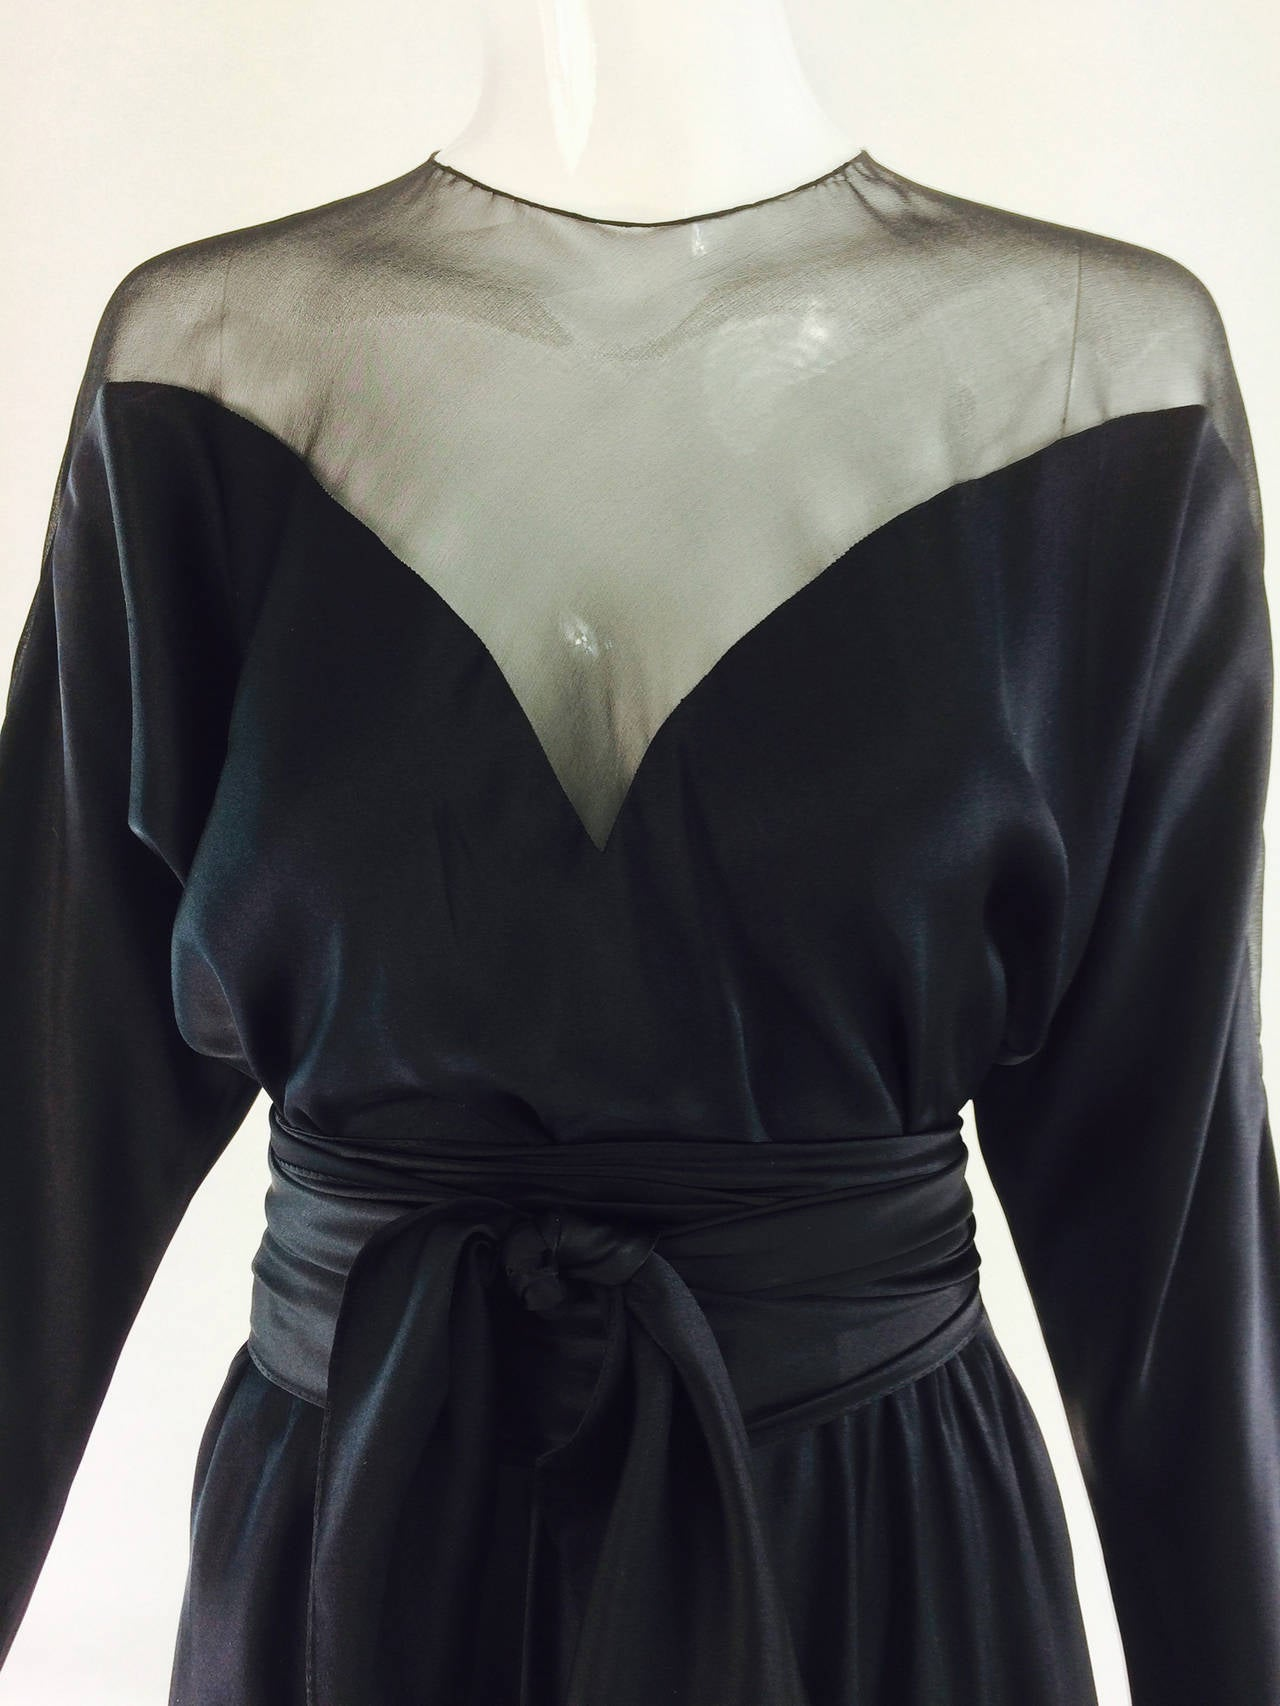 1970s Halston black silk chiffon silk charmeuse bias cut cocktail dress. A similar dress was worn by Liza Minnelli in Halston's 1971 made to order show. Cocktail dress with dolman sleeves, the upper bodice is done in sheer black silk chiffon